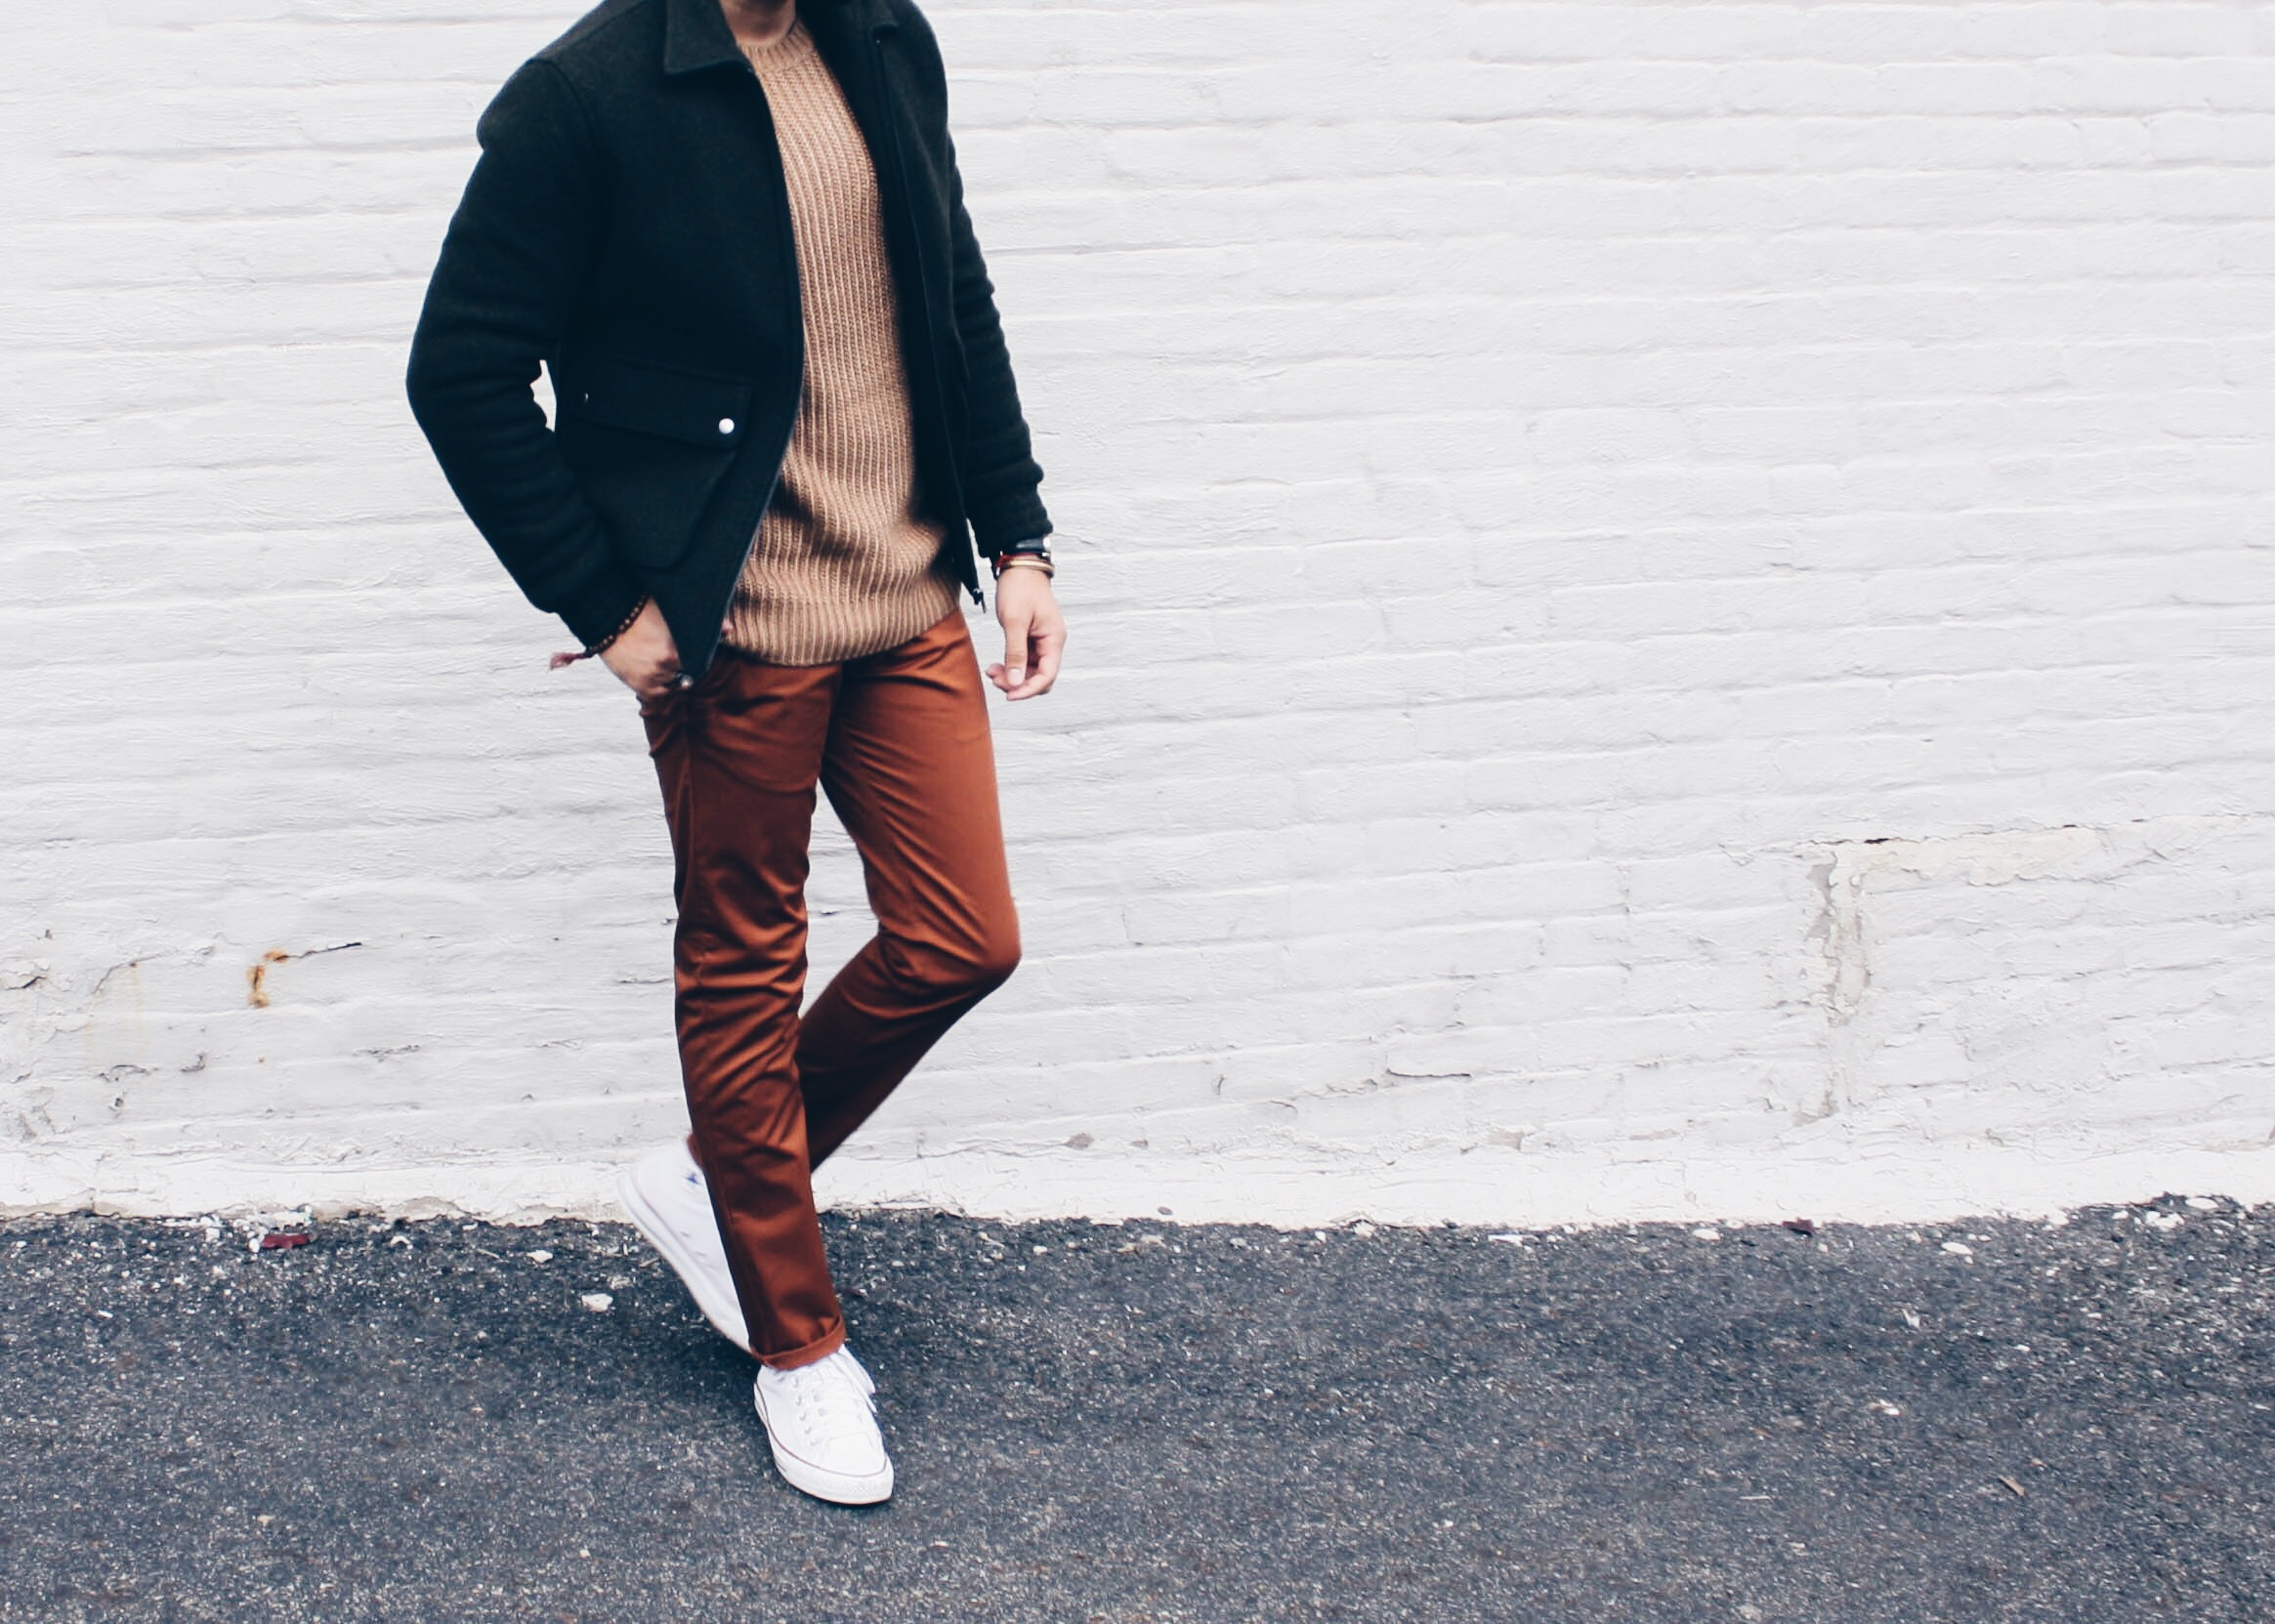 sam-c-perry-chunky-ribbed-knit-sweater-slim-chinos-cropped-bottom.jpg